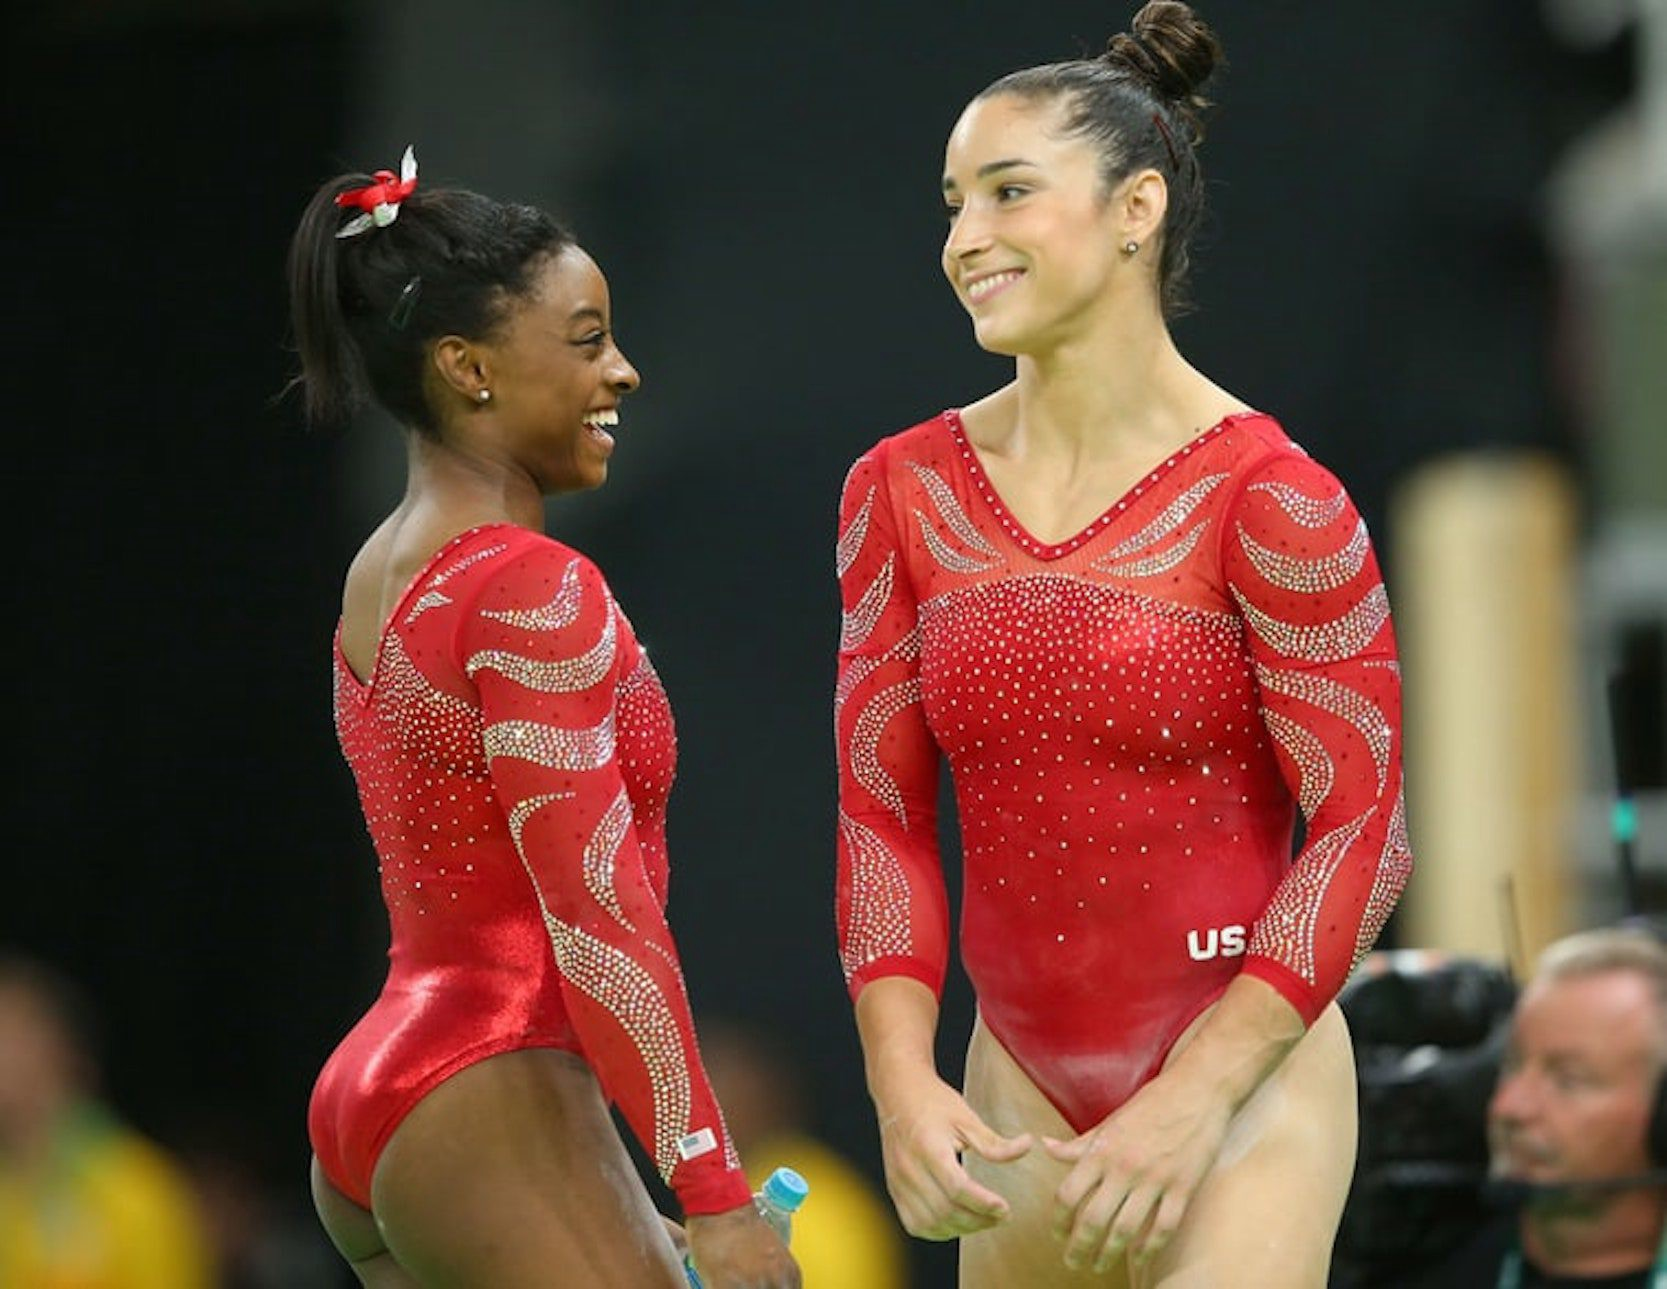 Here's Why We Are Totally Obsessed With Team U S A Gymnastics… [VIDEO]